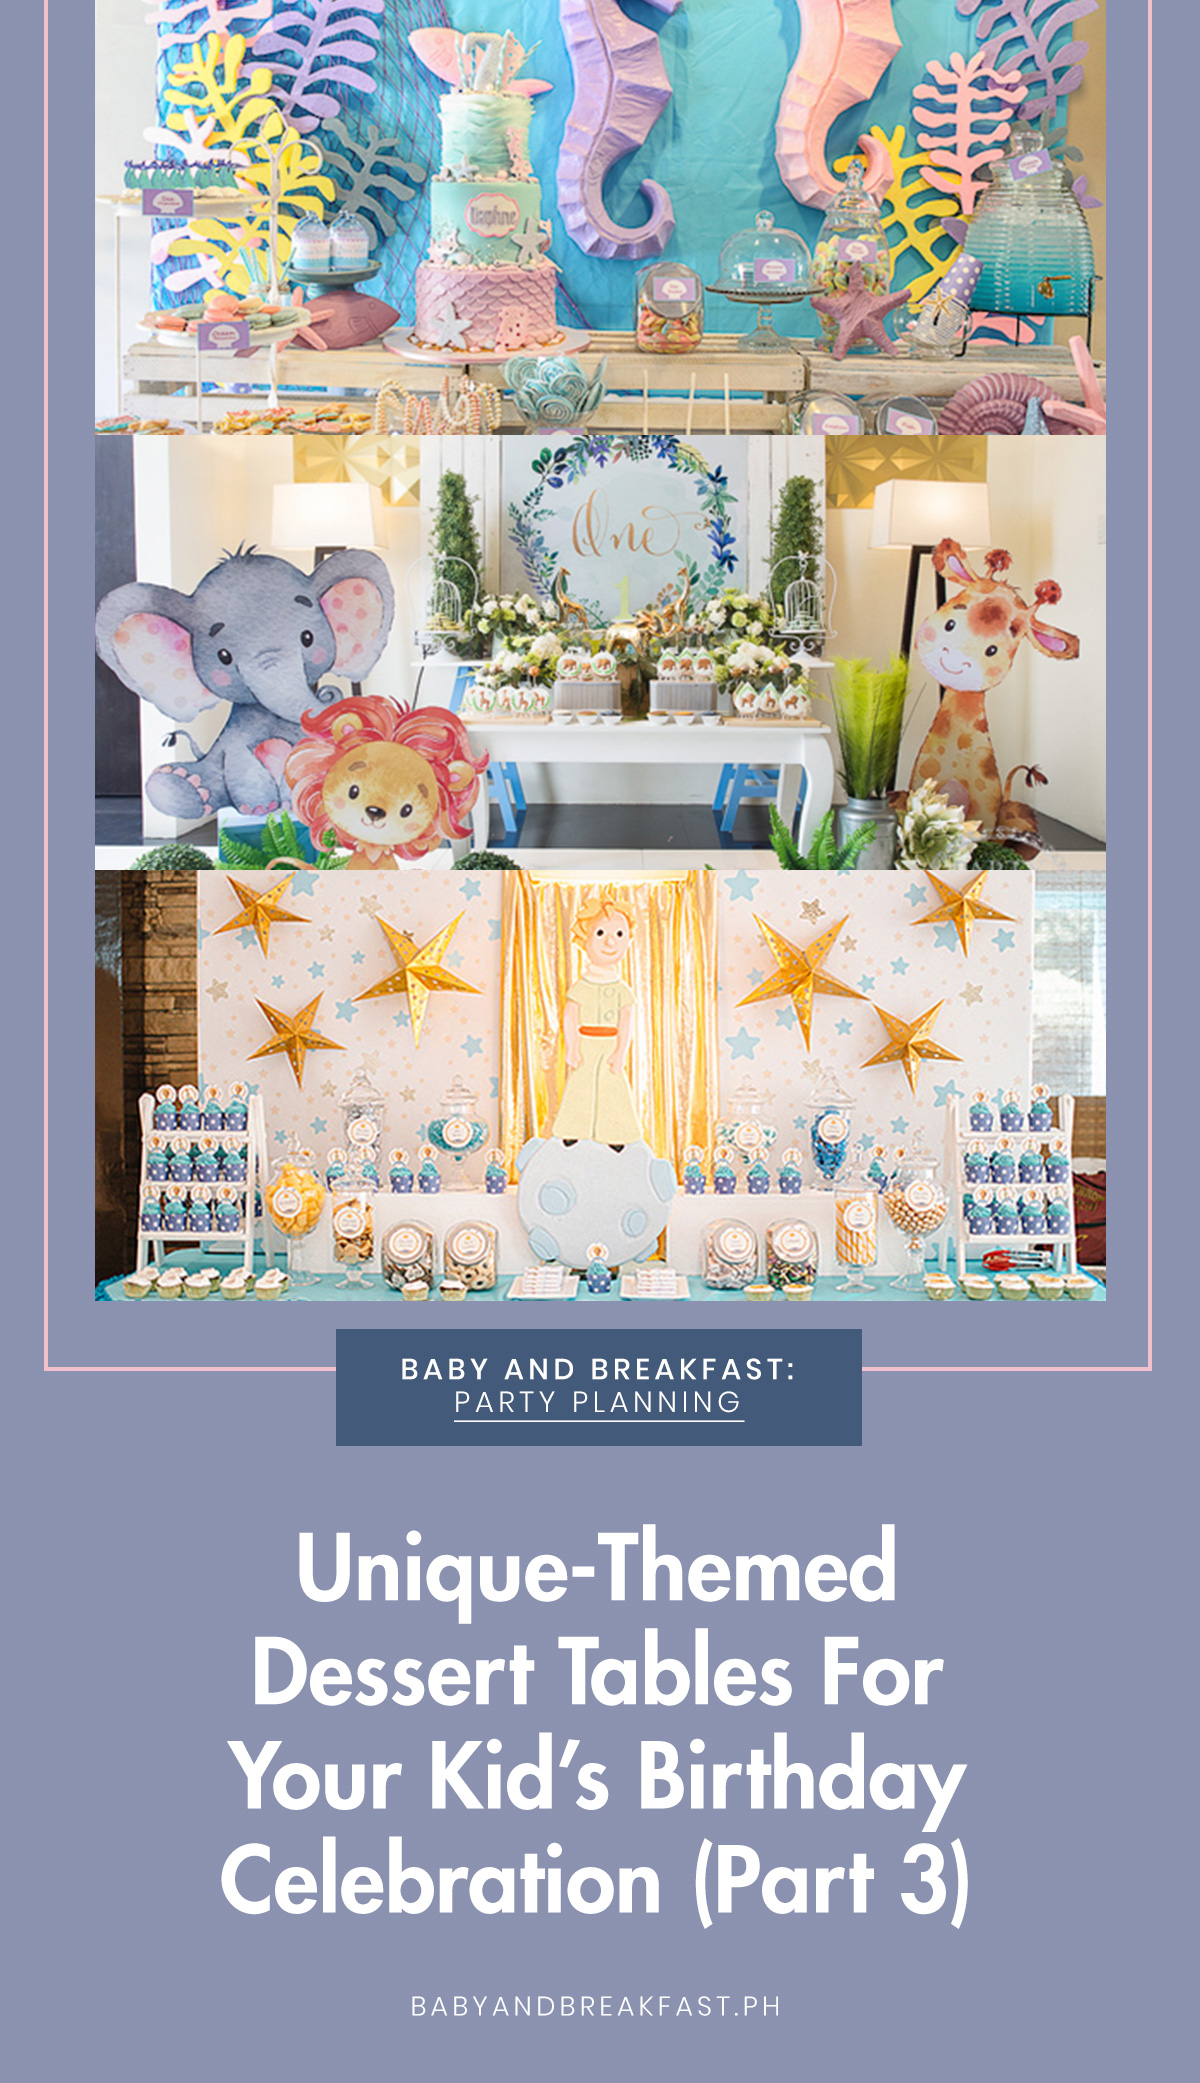 Baby and Breakfast: Party Planning Unique-Themed Dessert Tables for Your Kid's Birthday Celebration (Part 3)